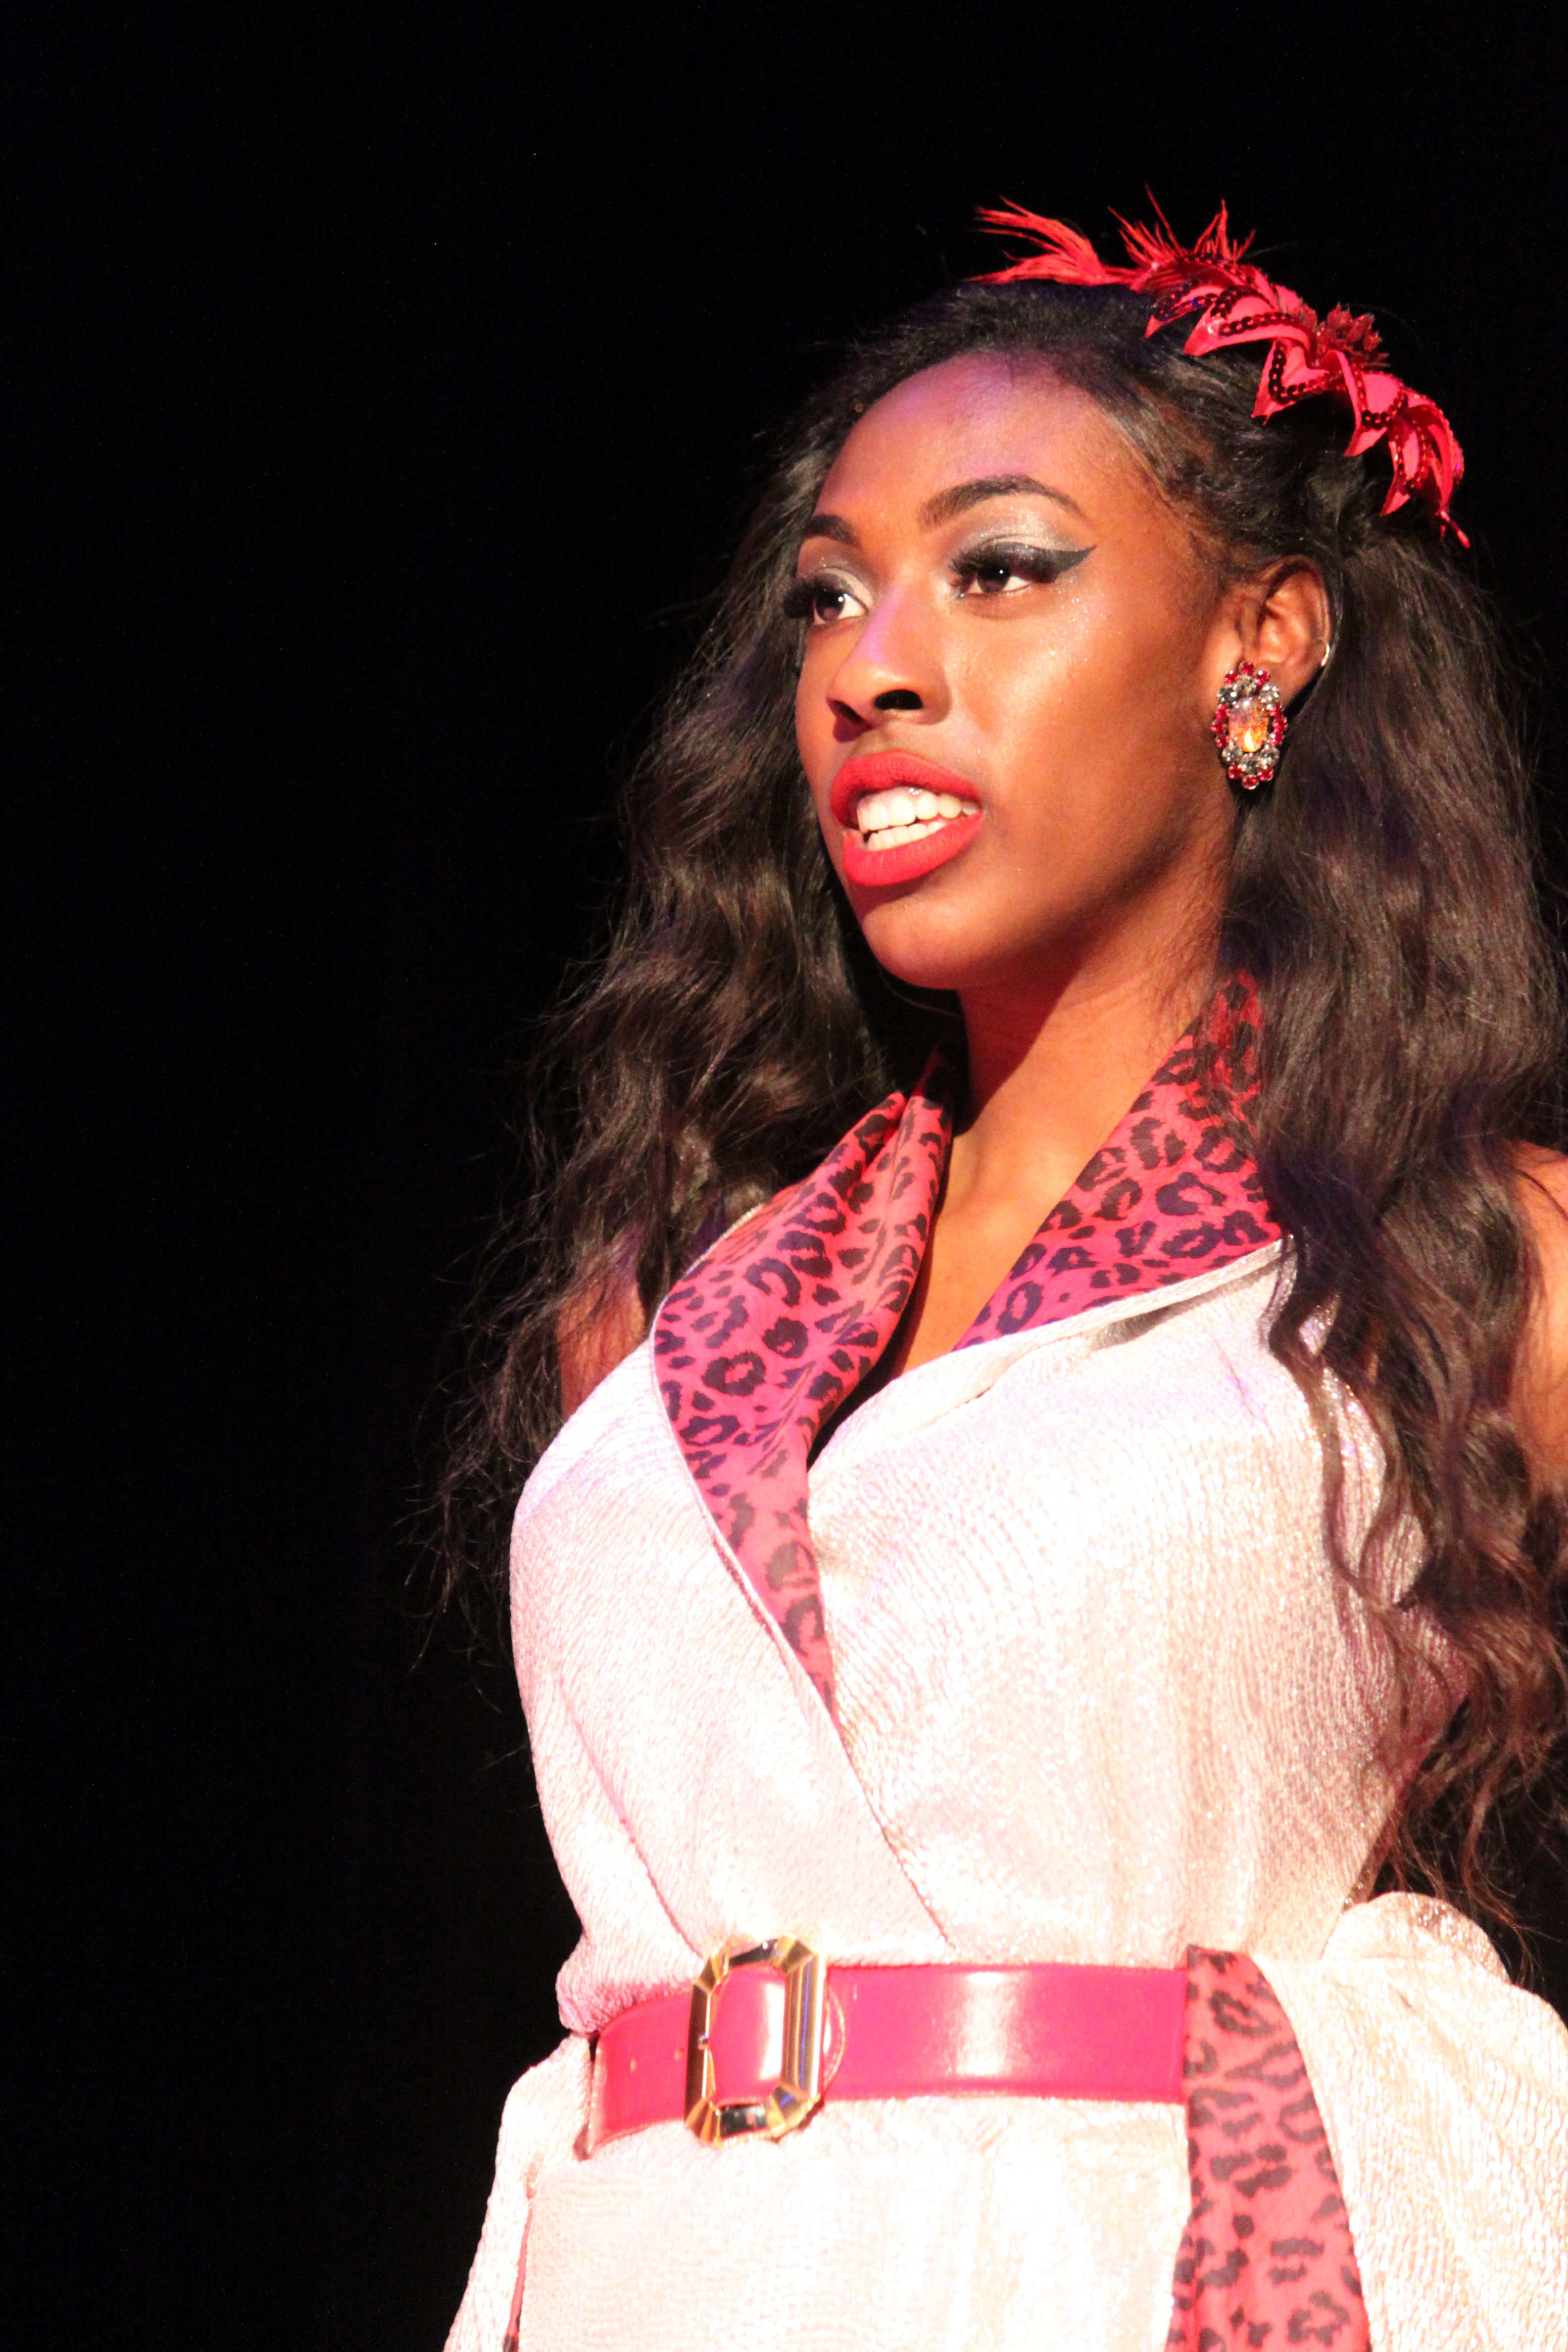 Photo fo Akira Owens in Clue The Musical production